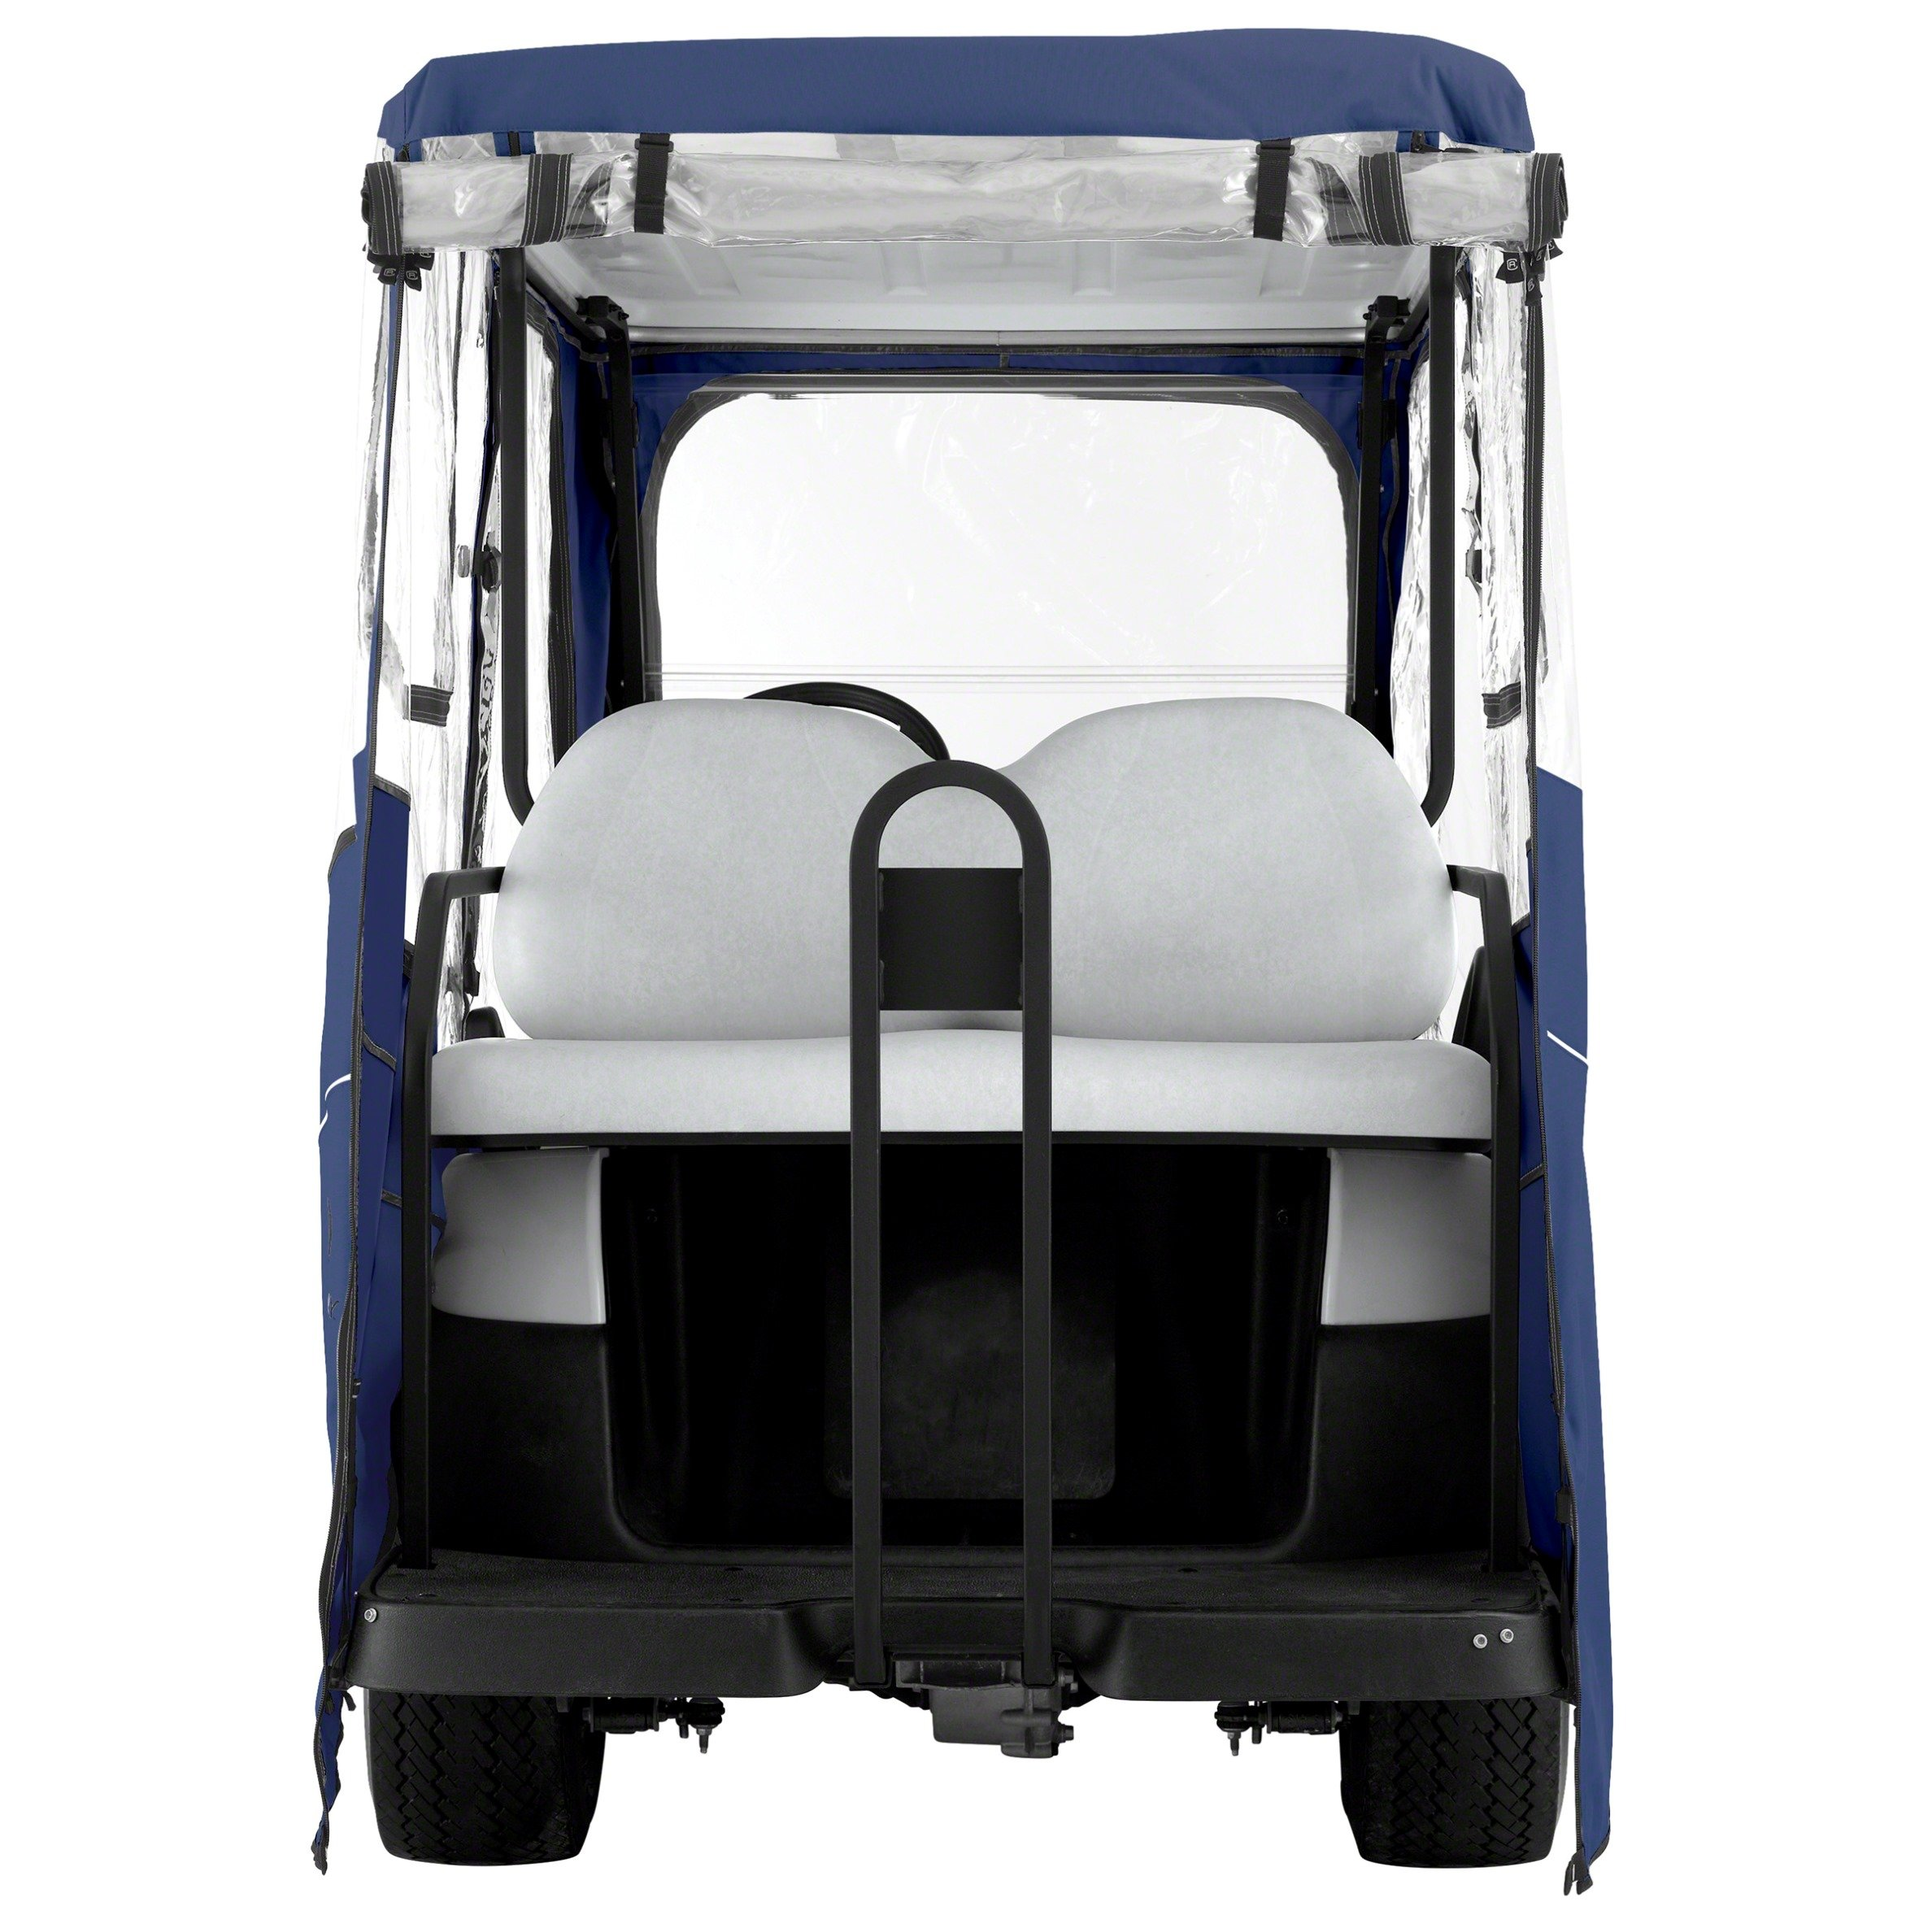 Classic Accessories Fairway Golf Cart Deluxe Enclosure, Navy, Long Roof by Classic Accessories (Image #4)